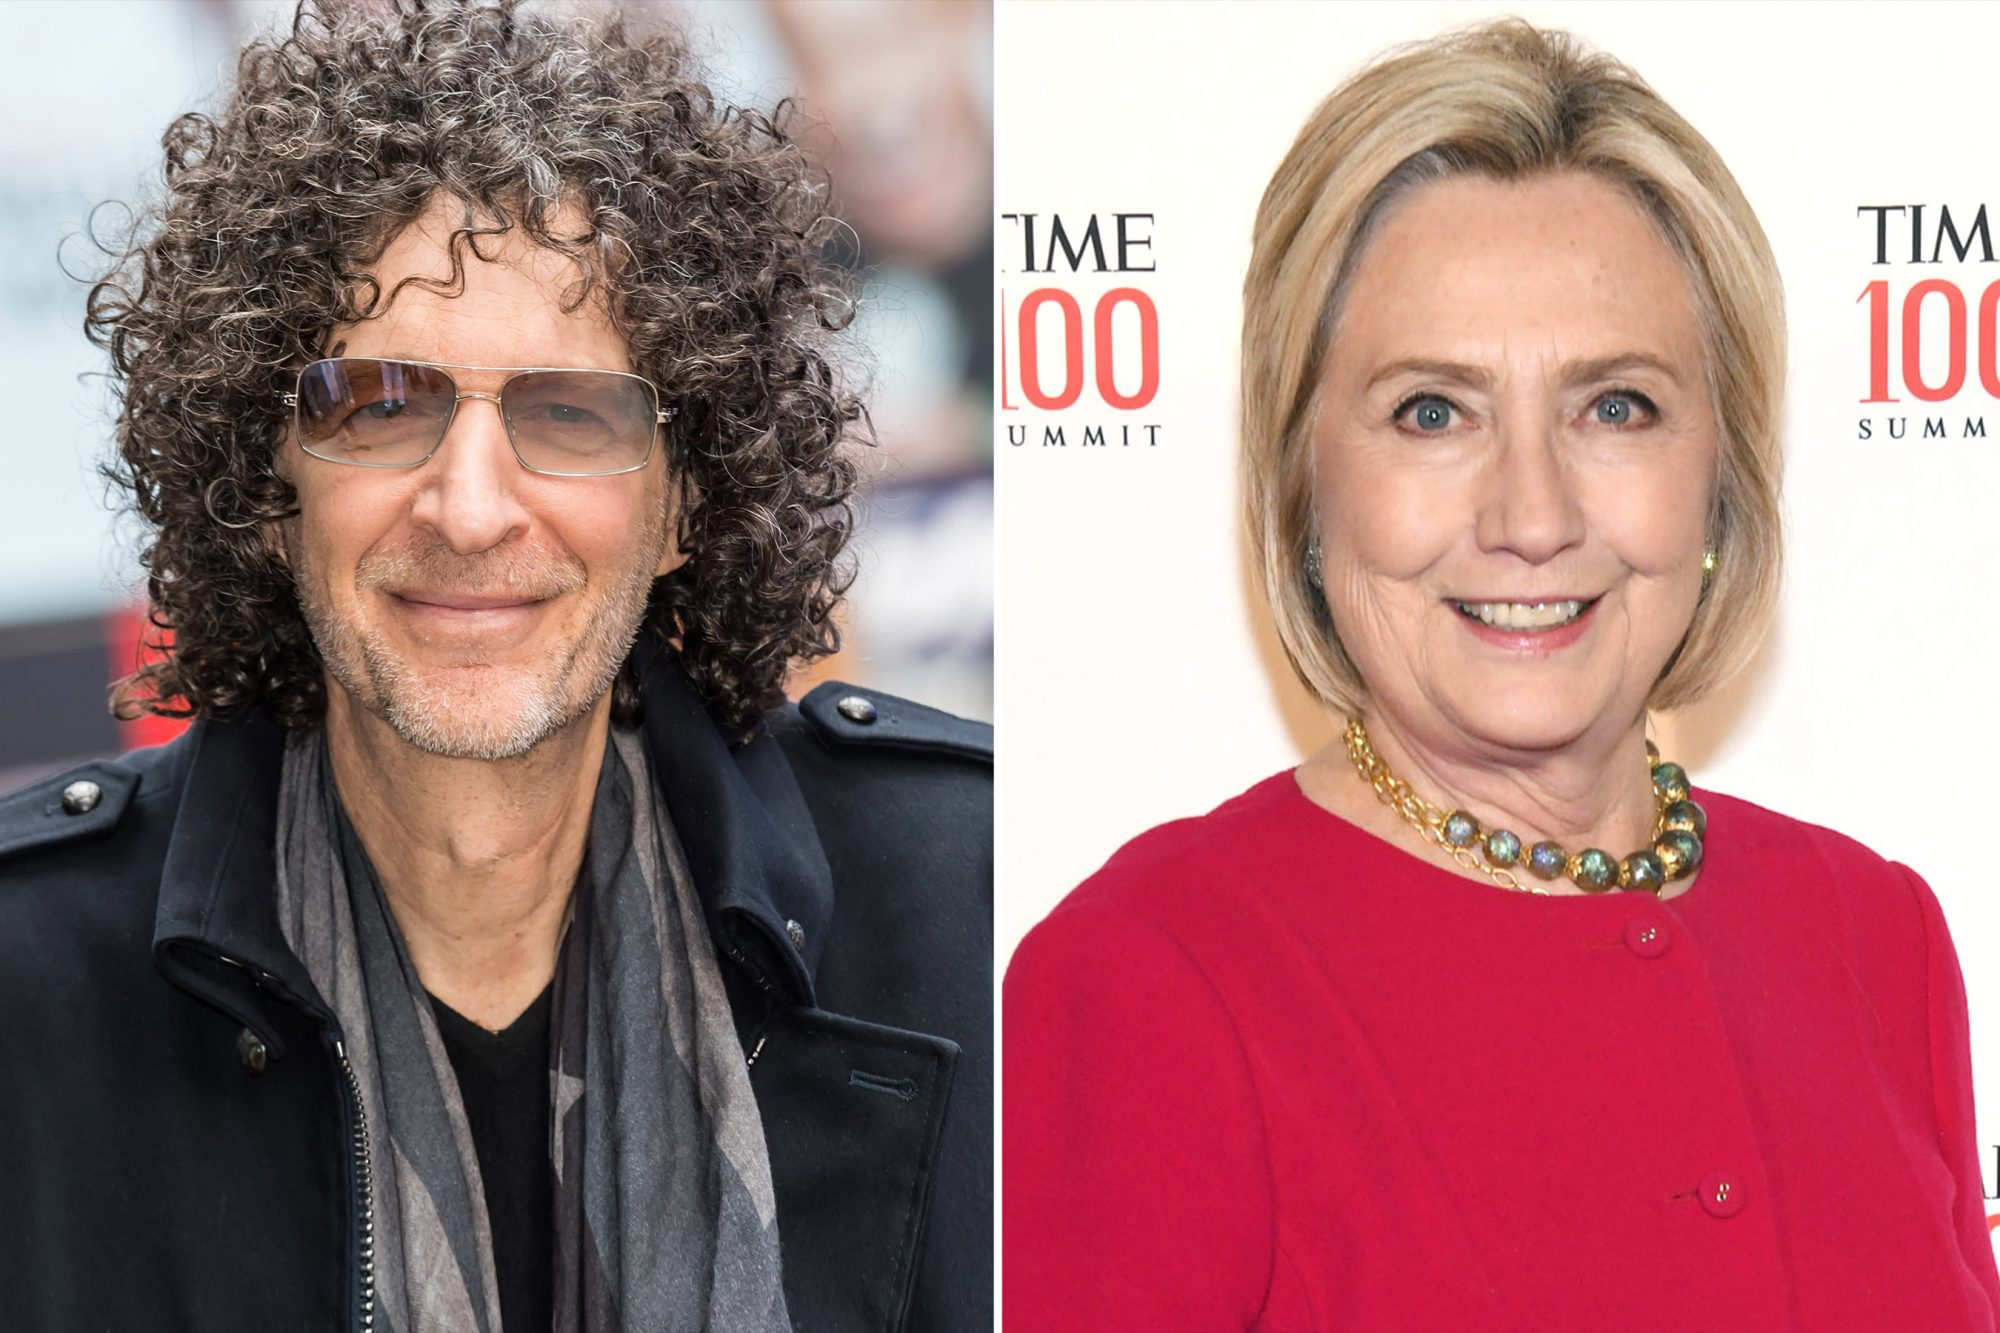 Howard Stern and Hilary Clinton